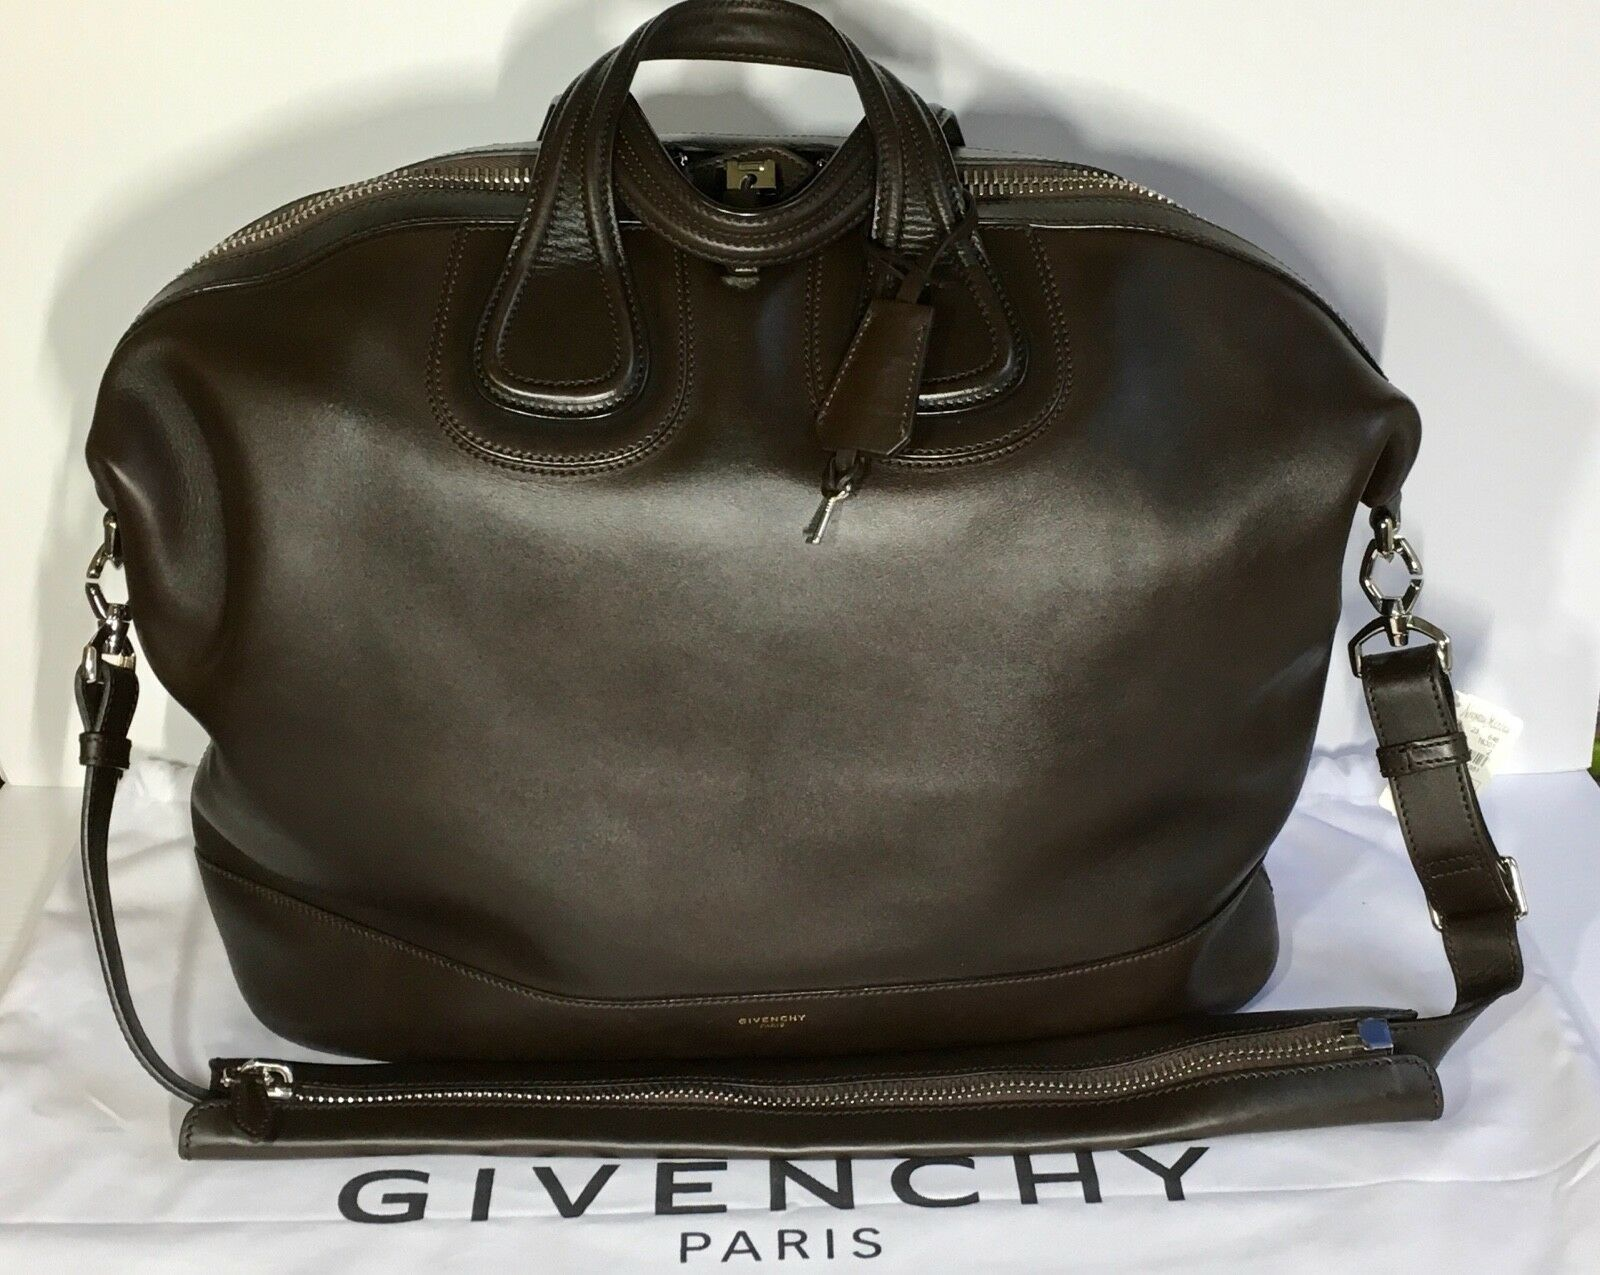 dc39d67300ca Givenchy Nightingale Men's Leather Satchel Bag Brown $3,990 New  w/tag,dustbag фото